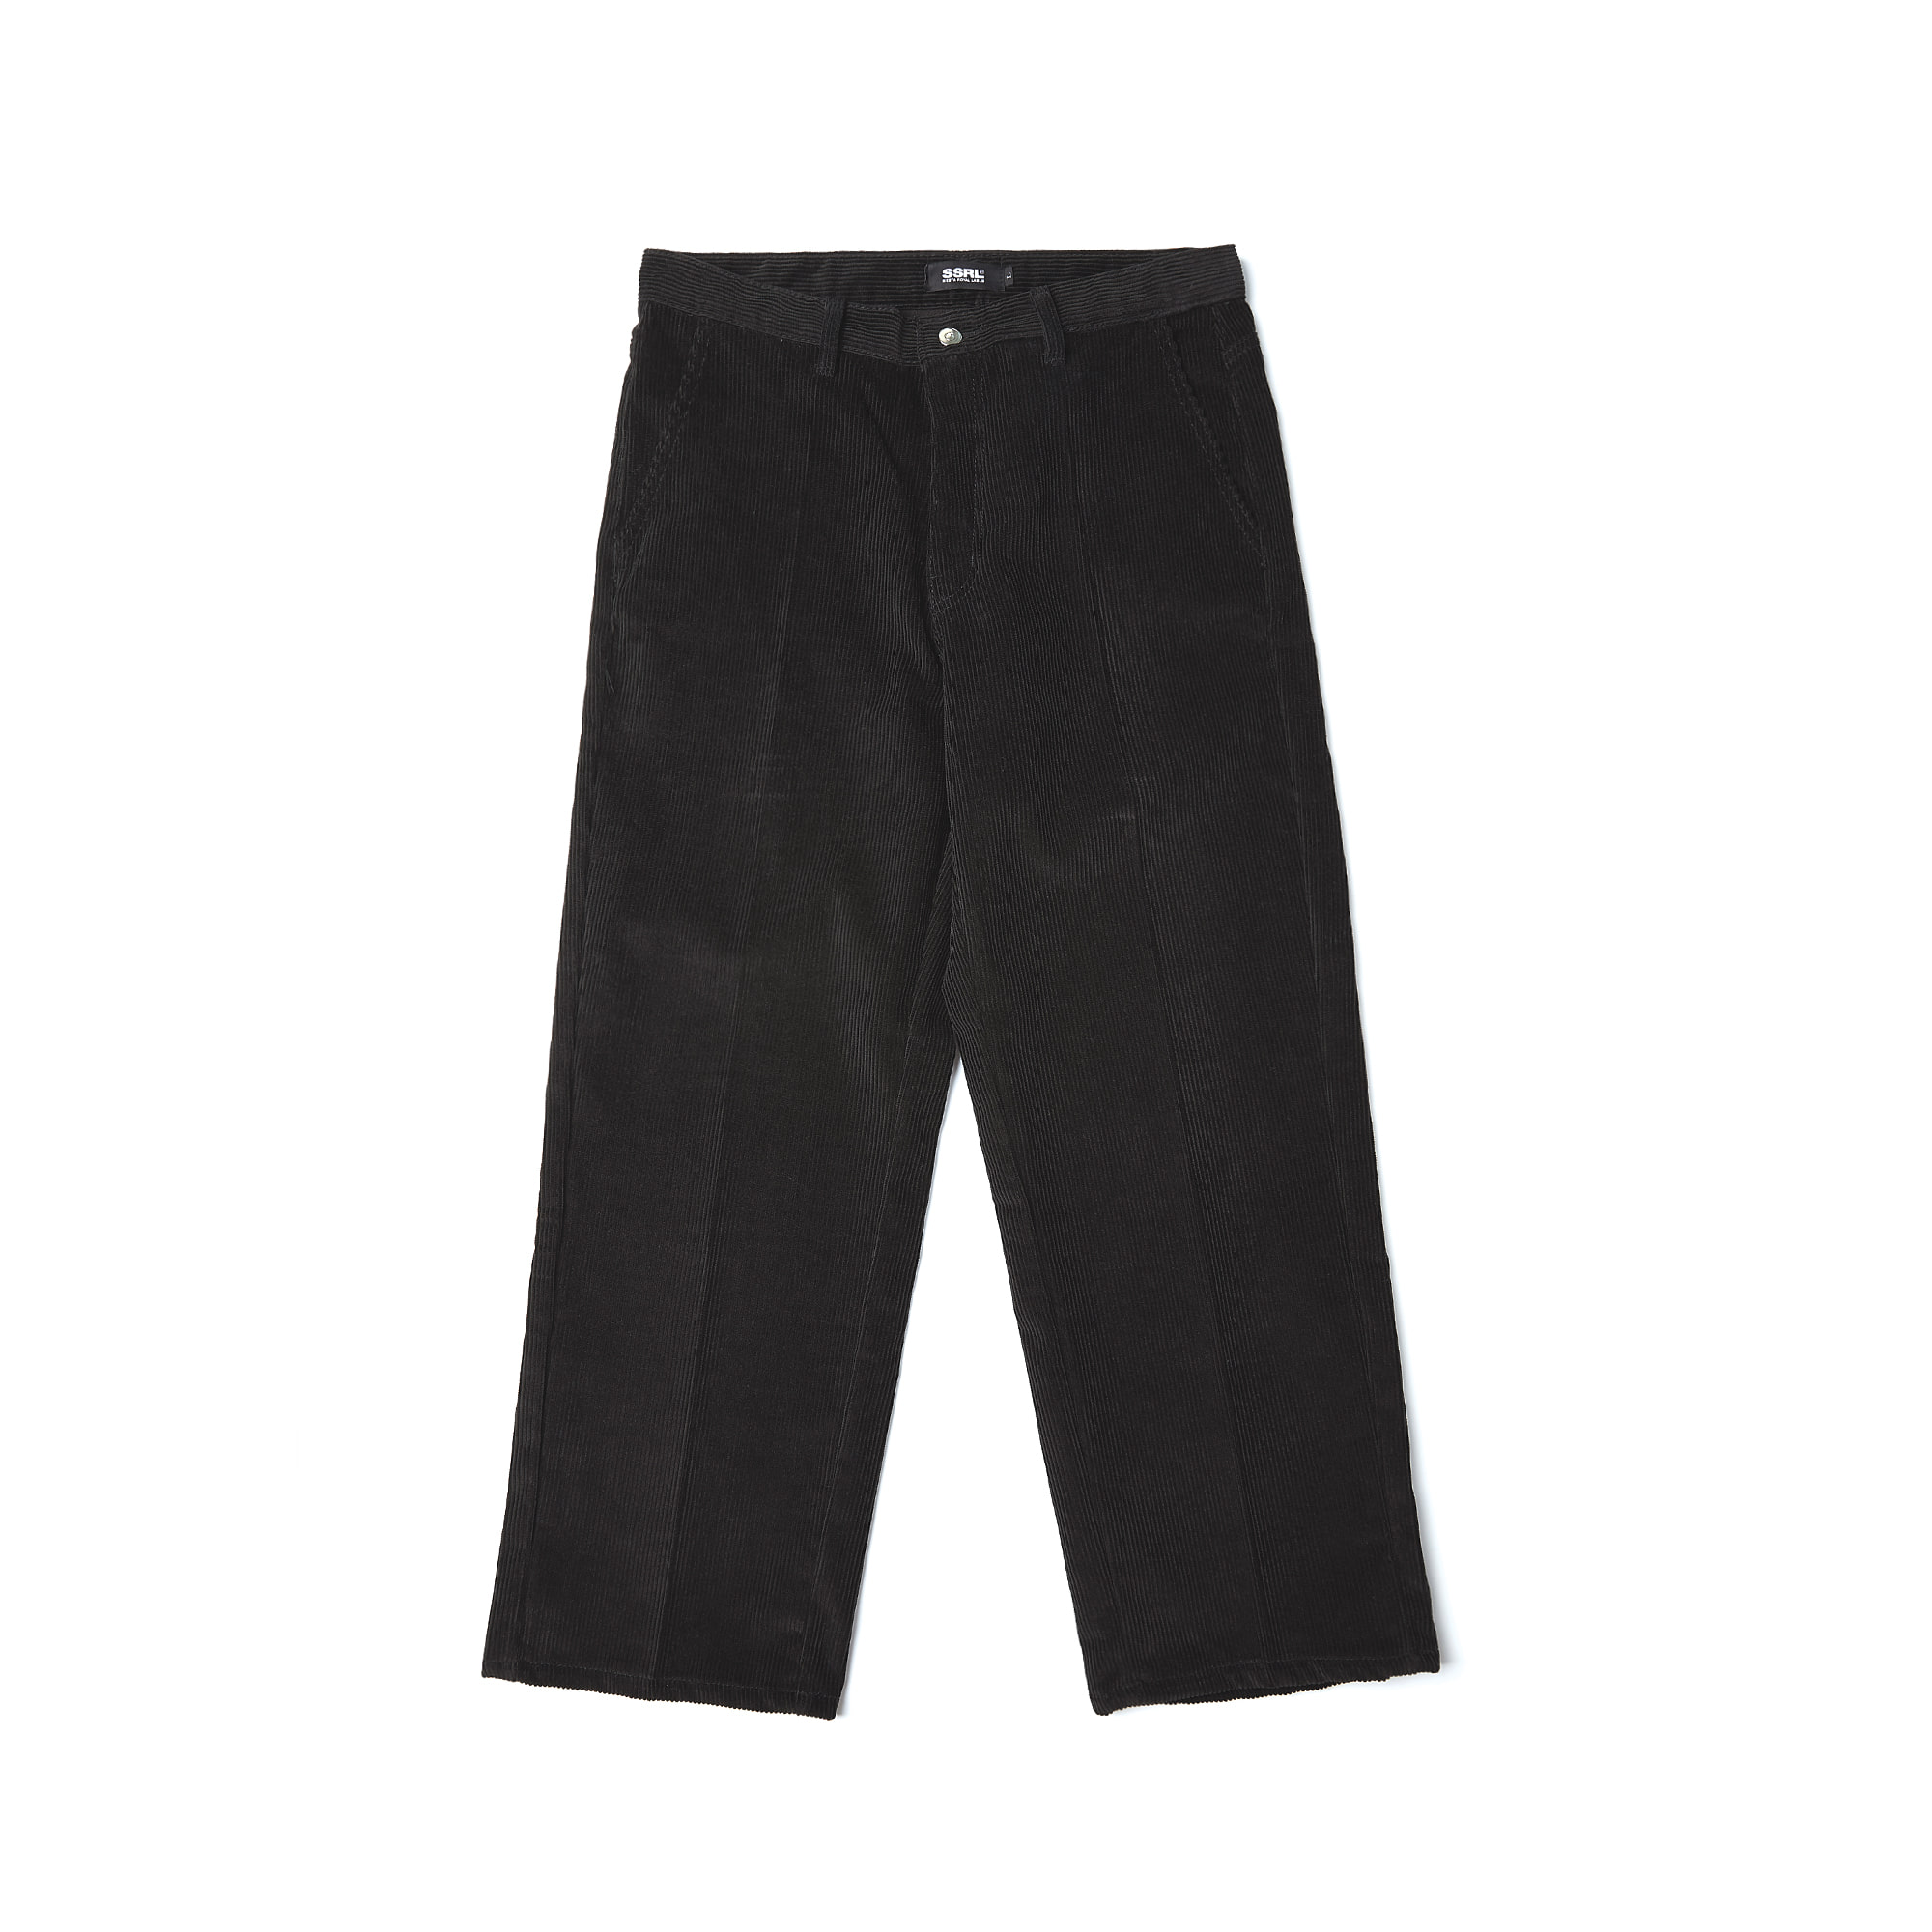 corduroy wide pants / black